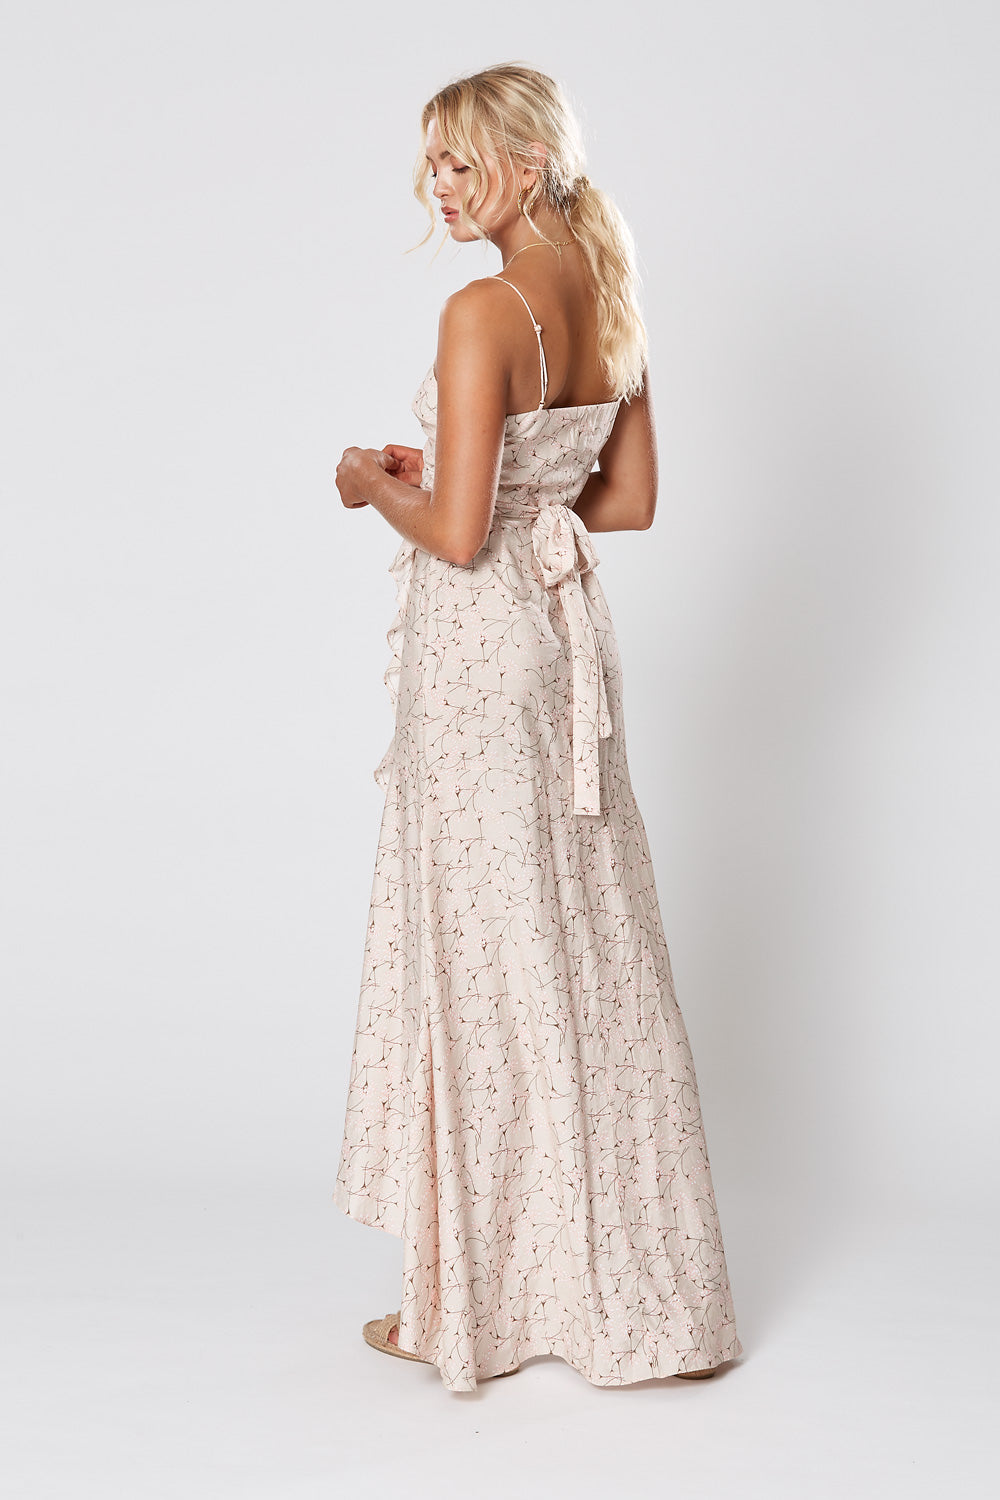 ST GERMAIN WRAP MAXI DRESS